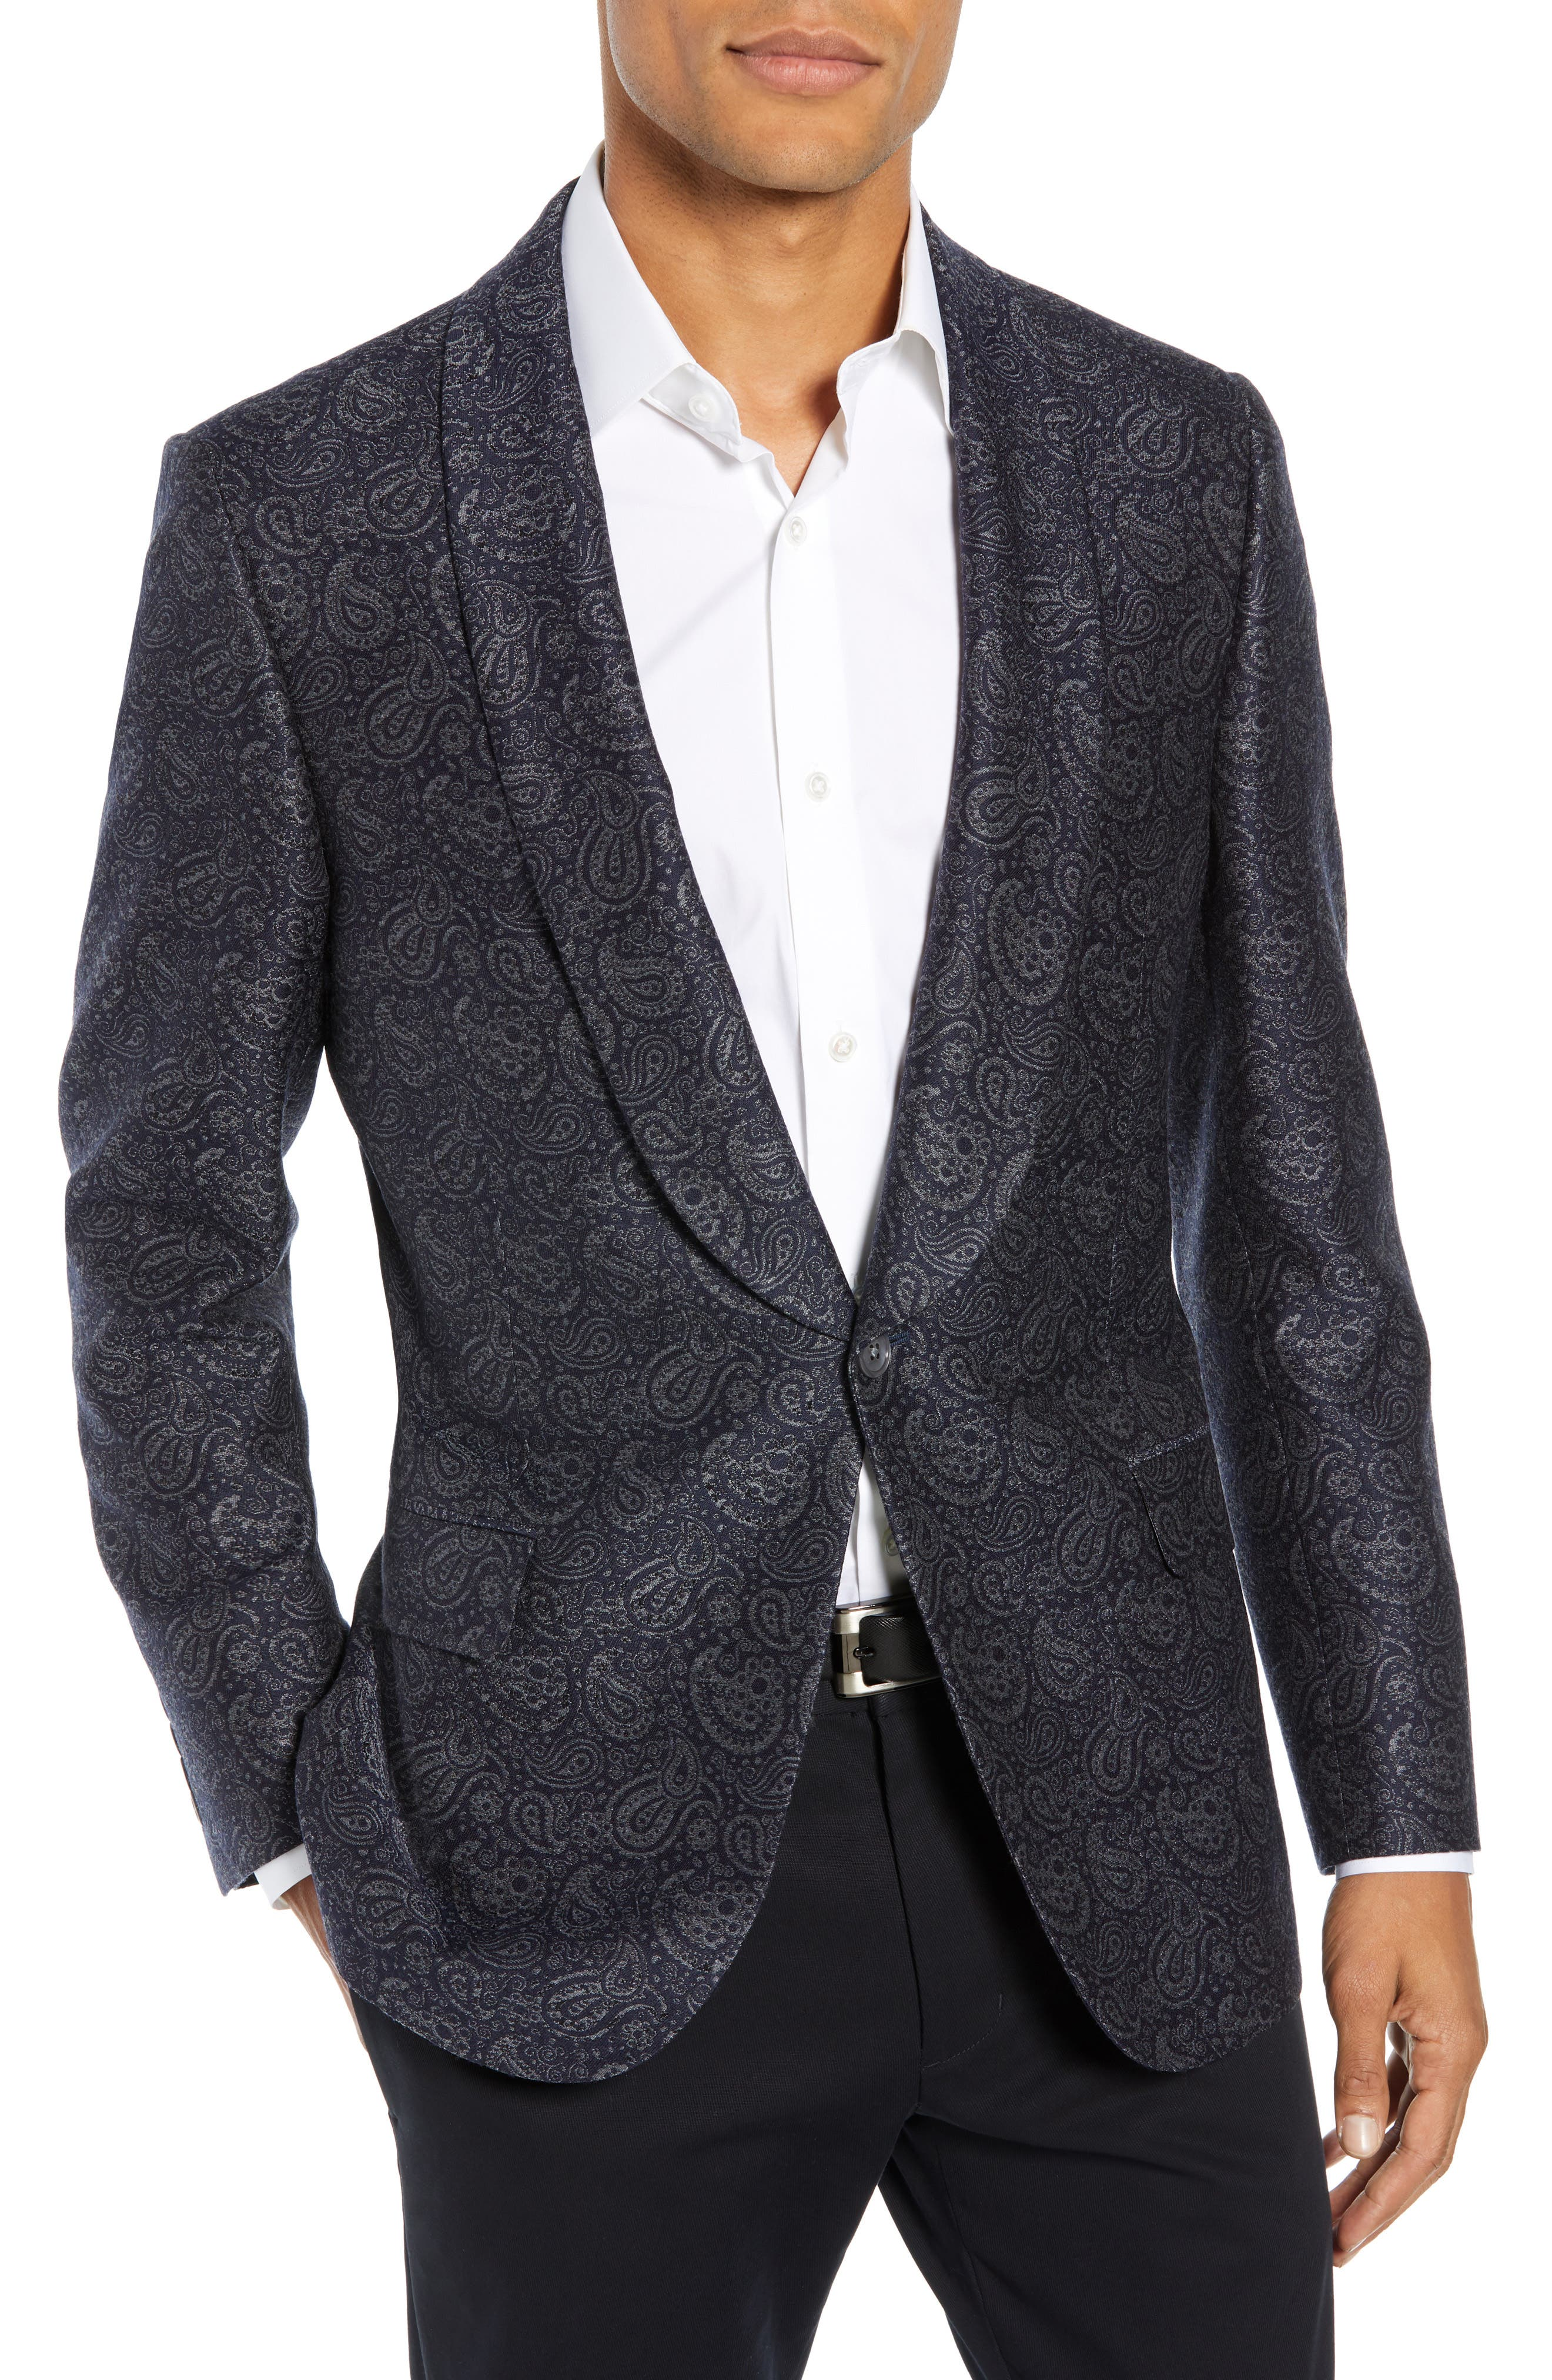 HICKEY FREEMAN Classic Fit Paisley Wool & Silk Dinner Jacket in Navy